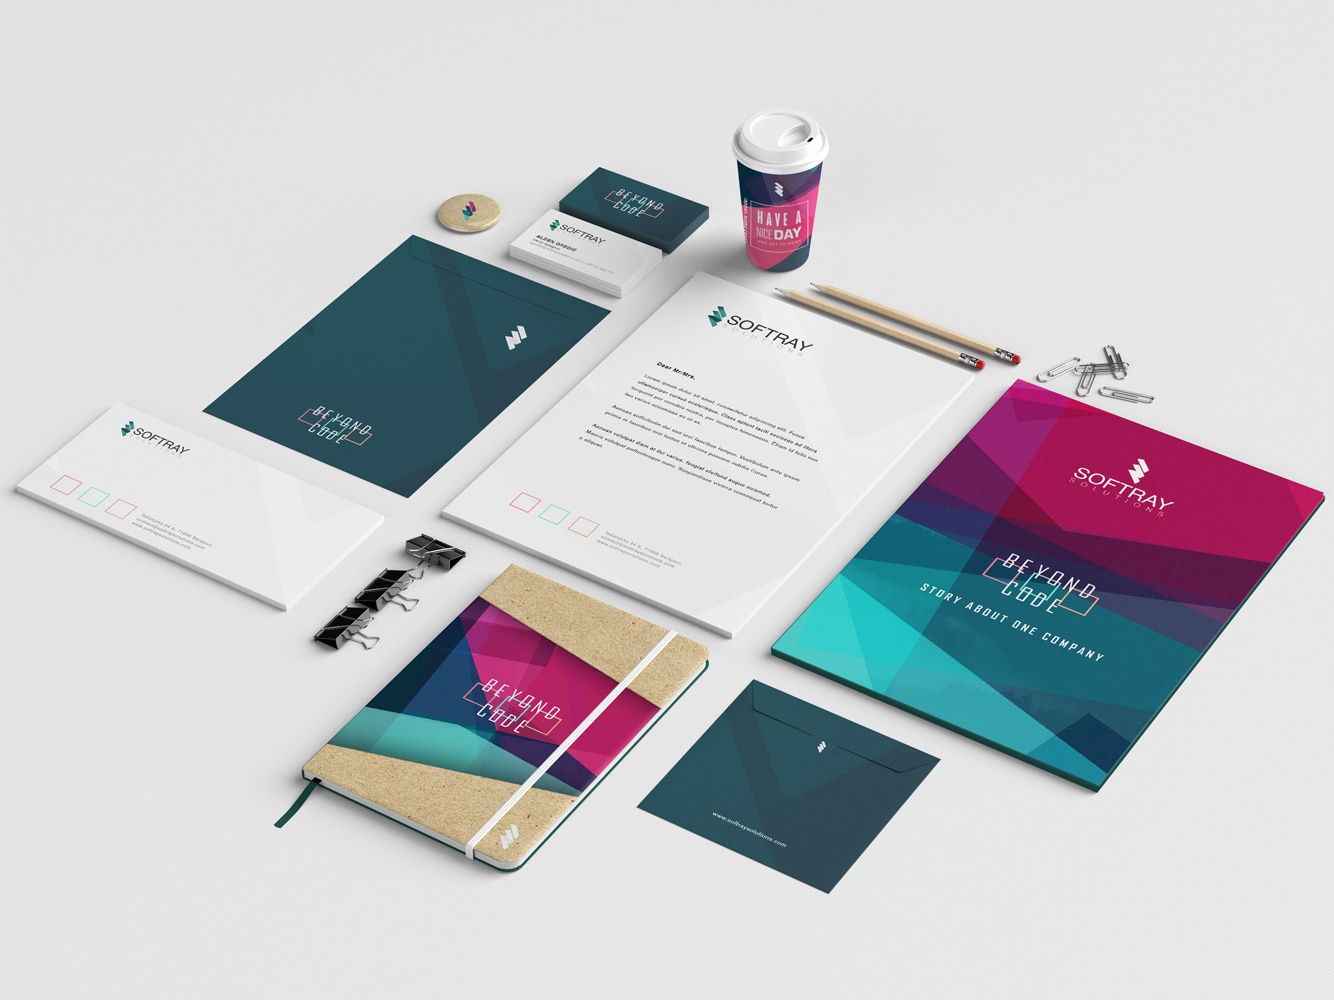 SoftraySolutions Company Branding indesign illustrator photoshop with love colorful coffee cup badge notebook envelope business card brochure letterhead print graphic  design branding